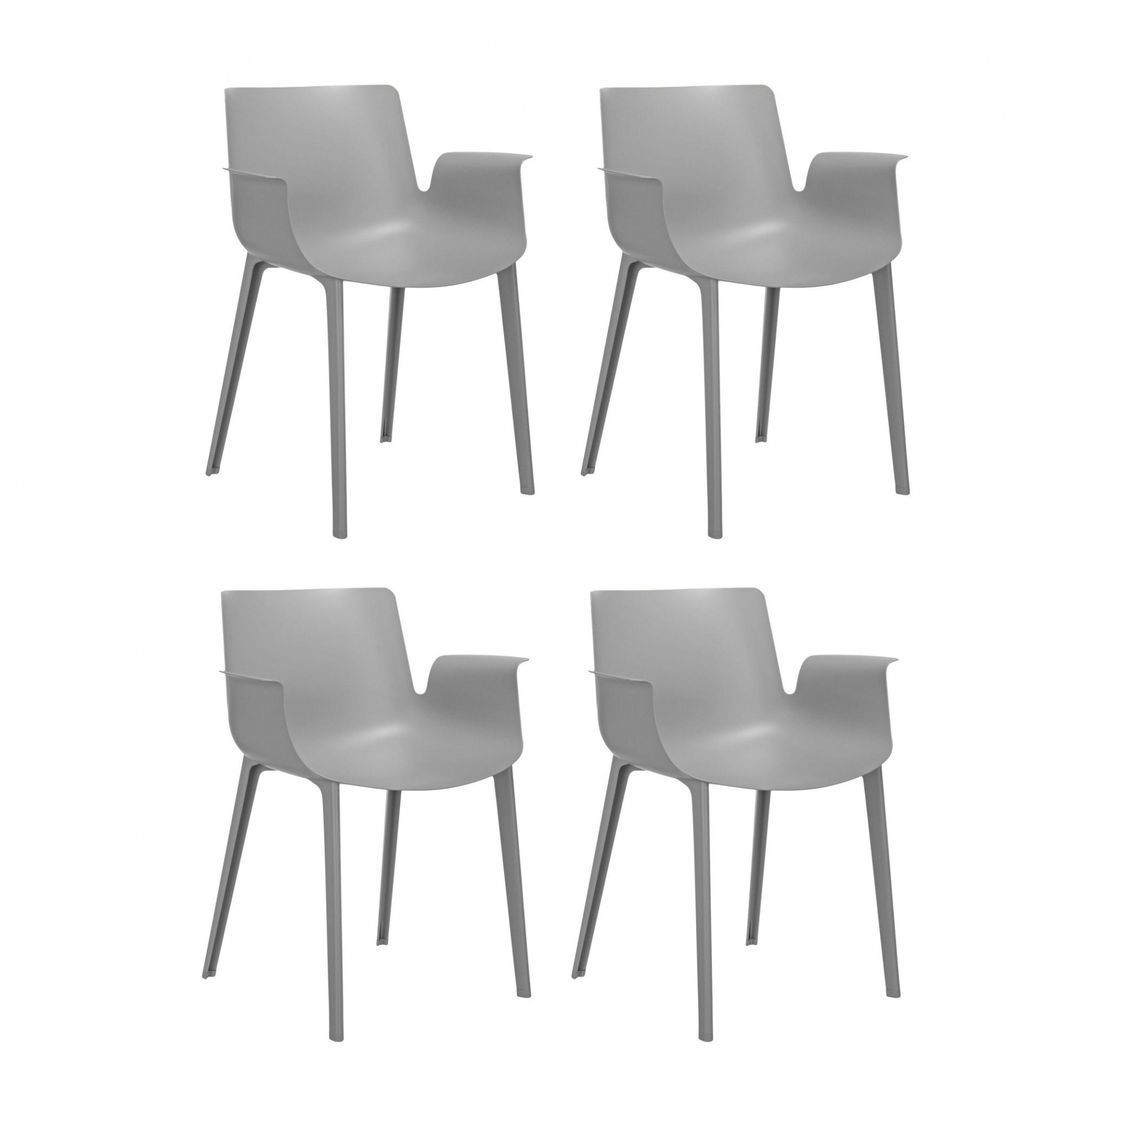 Piuma set de 4 sillas con reposabrazos kartell for Sillas con reposabrazos